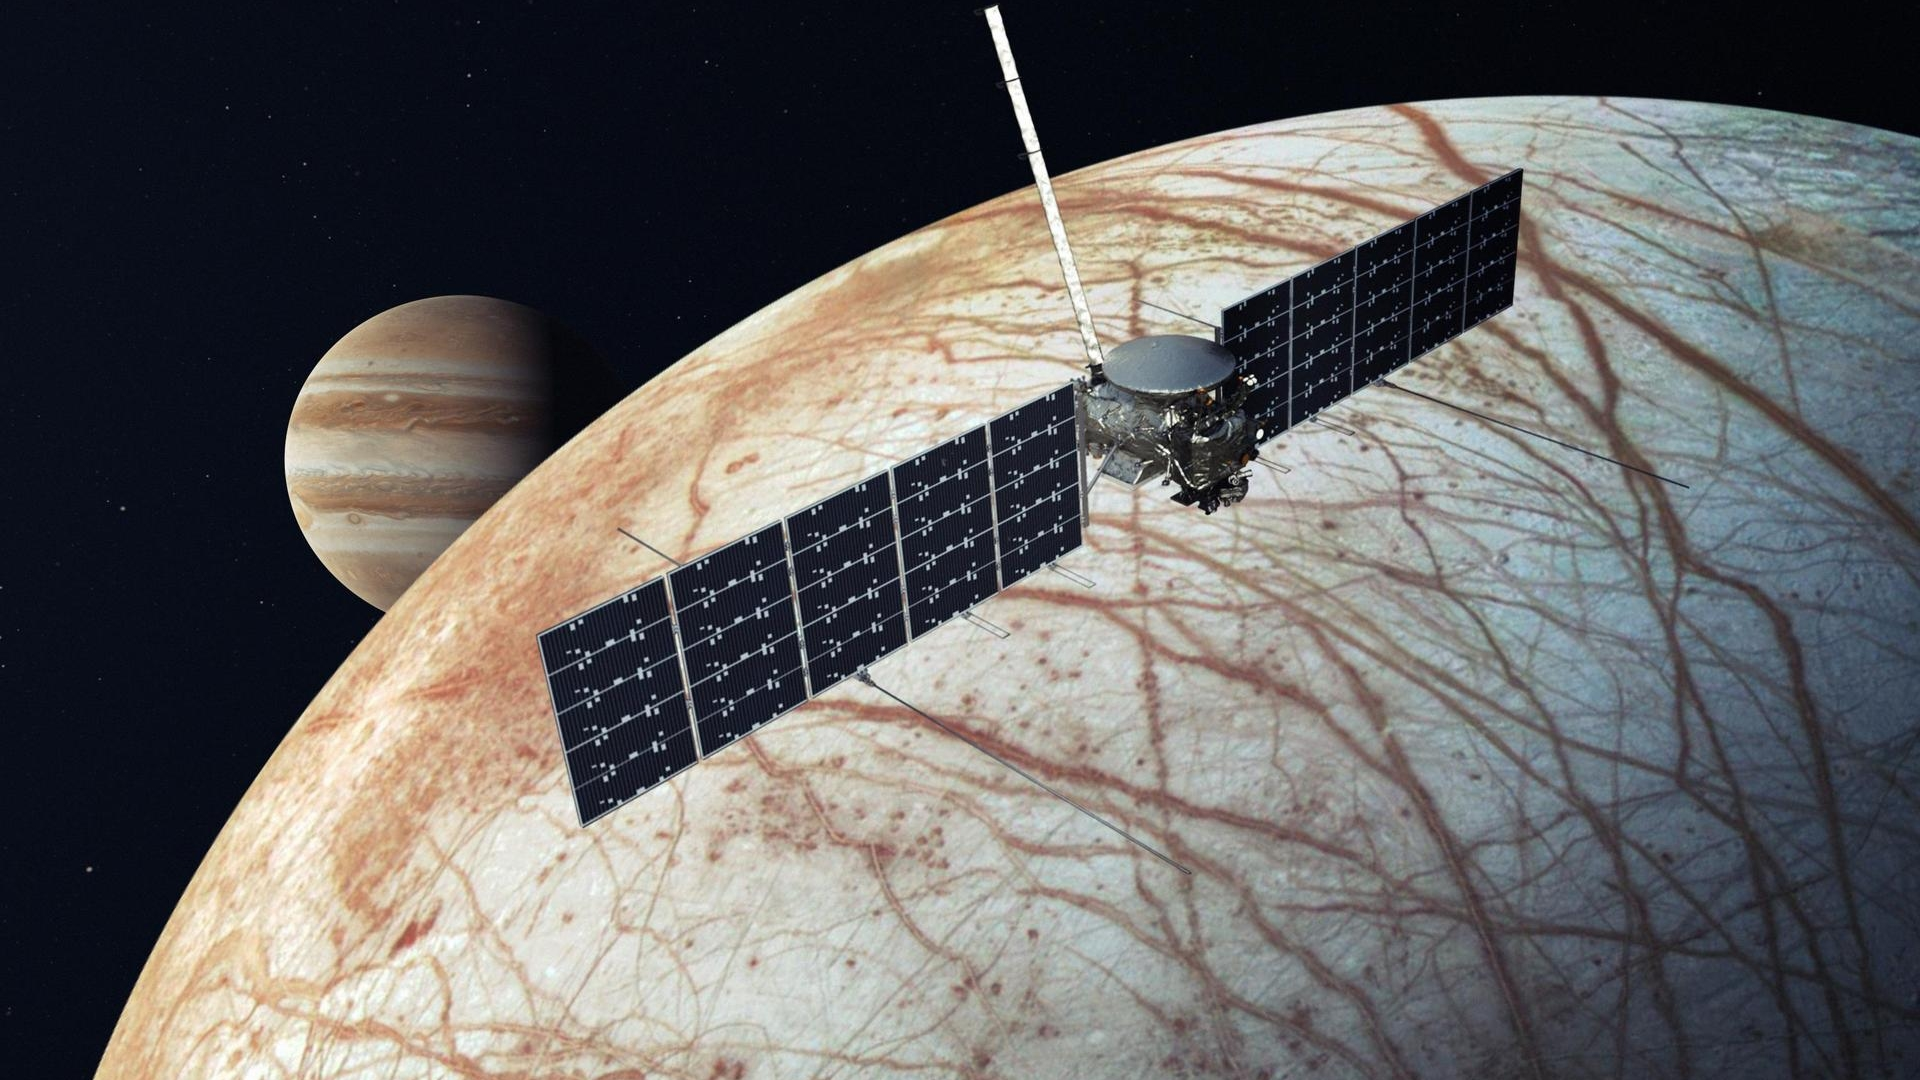 NASA selects SpaceX for mission to Jupiter moon Europa